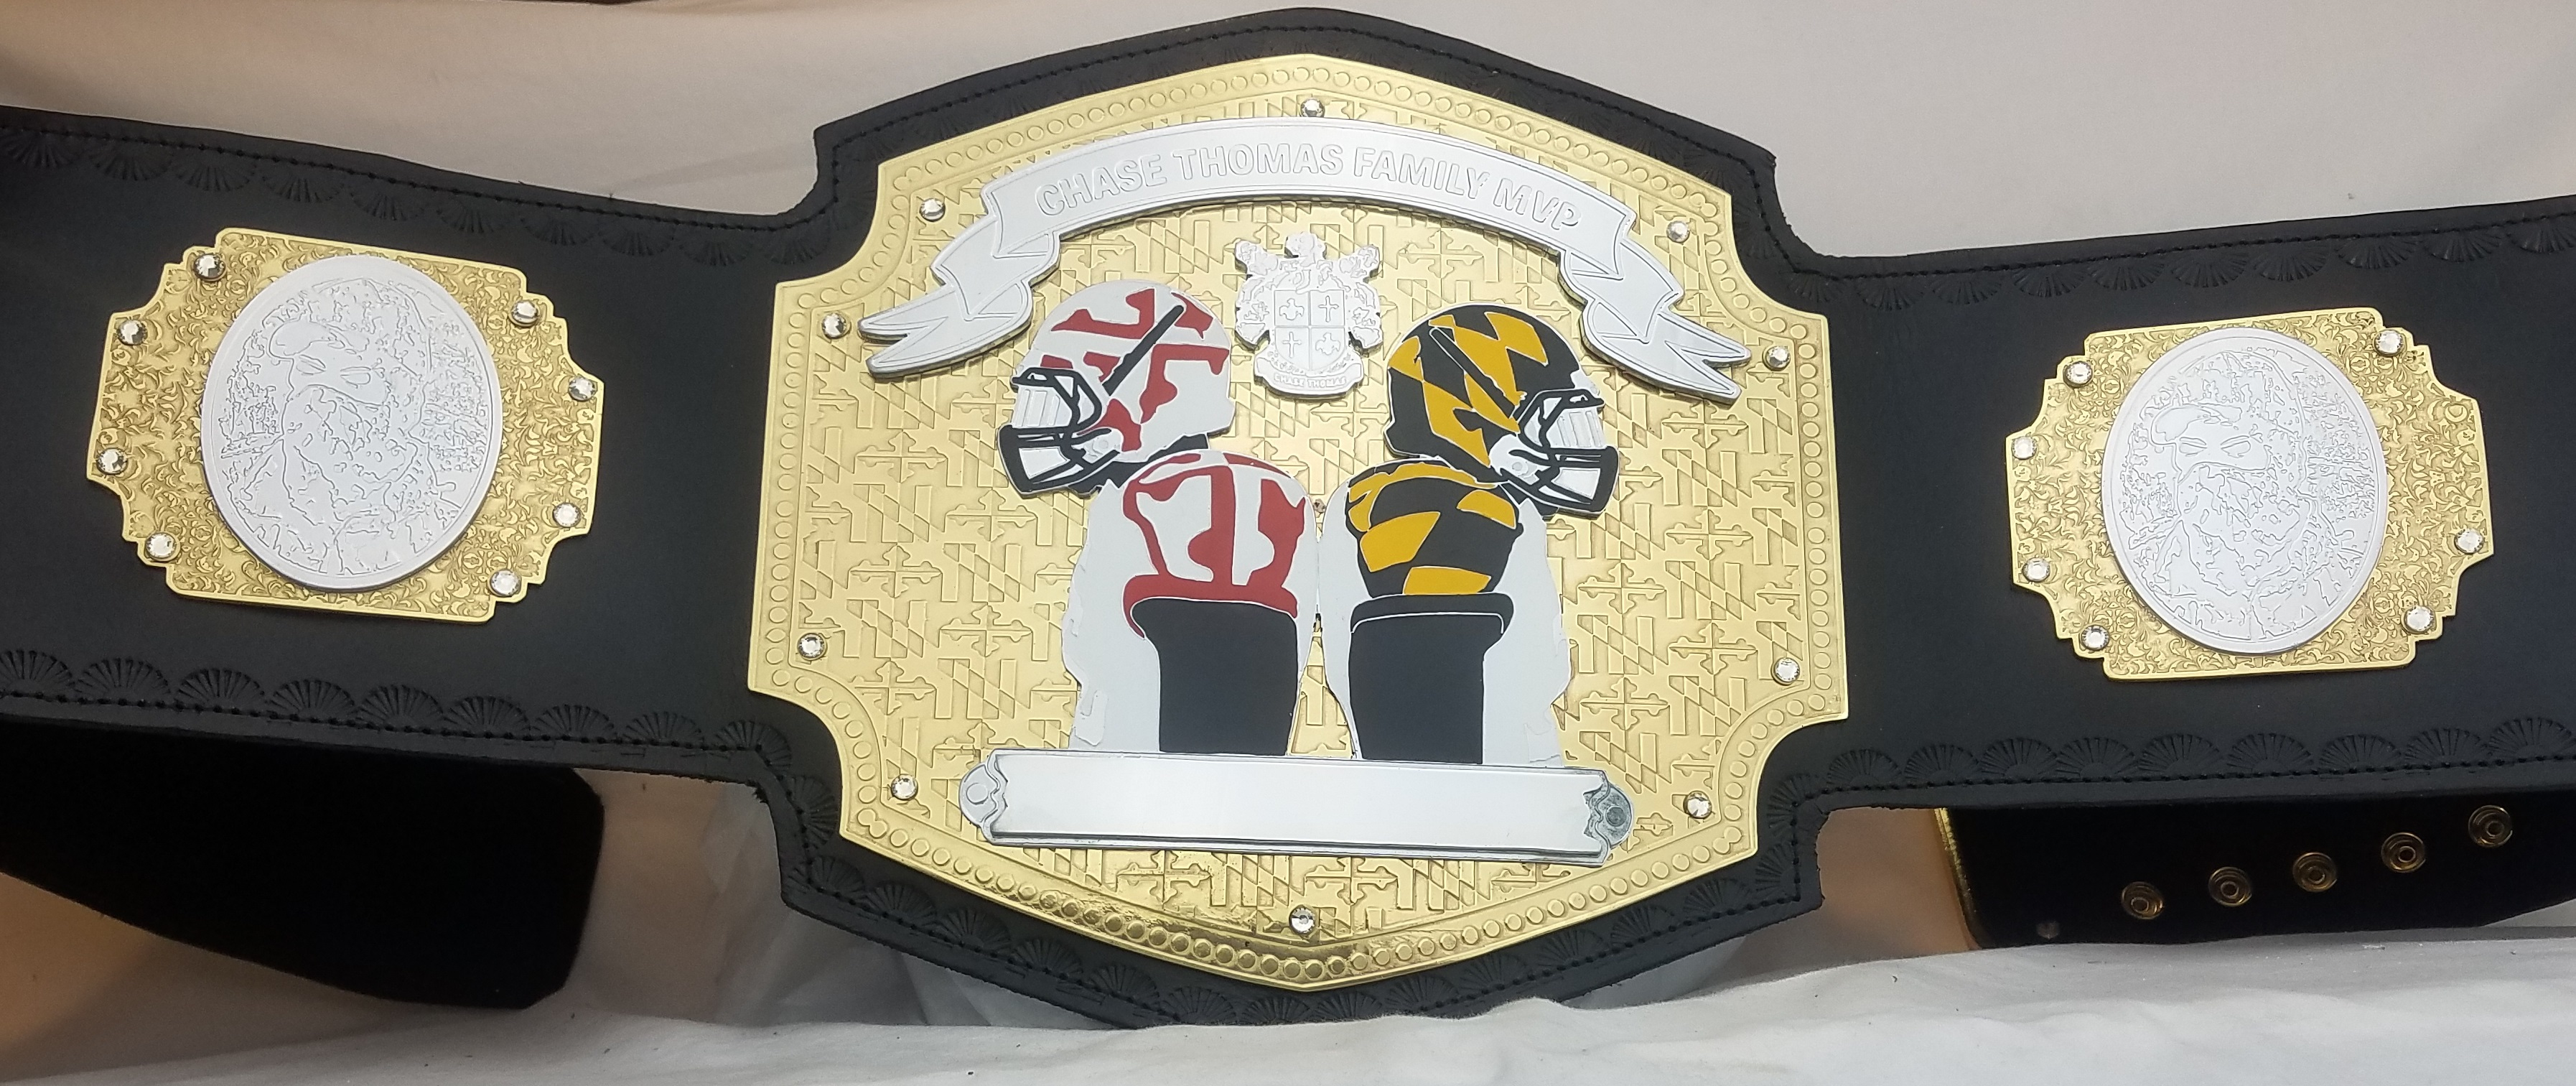 Biggest Rivalries Sports Award Championship Title Belts